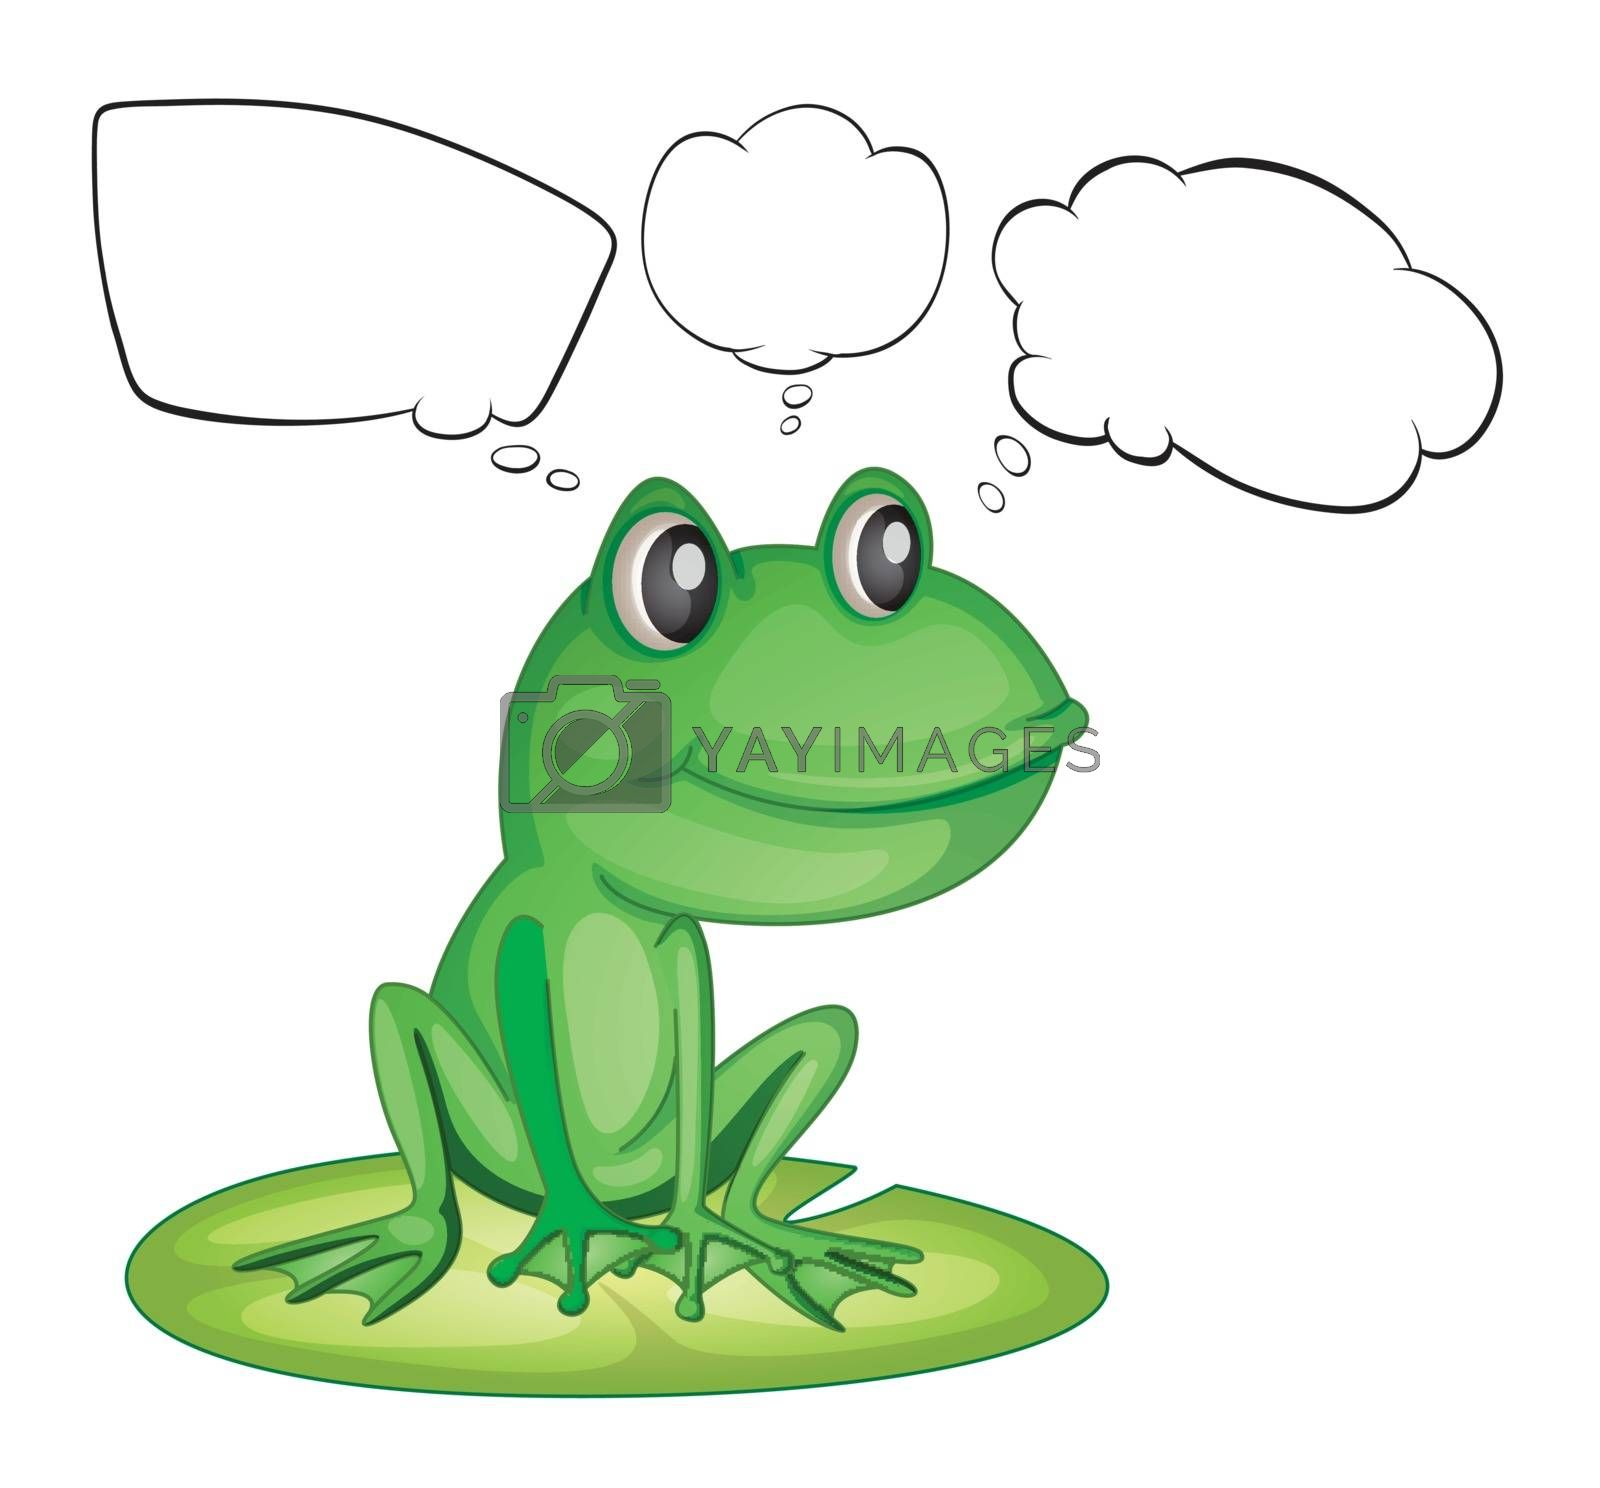 Illustration of an amphibian and the empty callouts on a white background